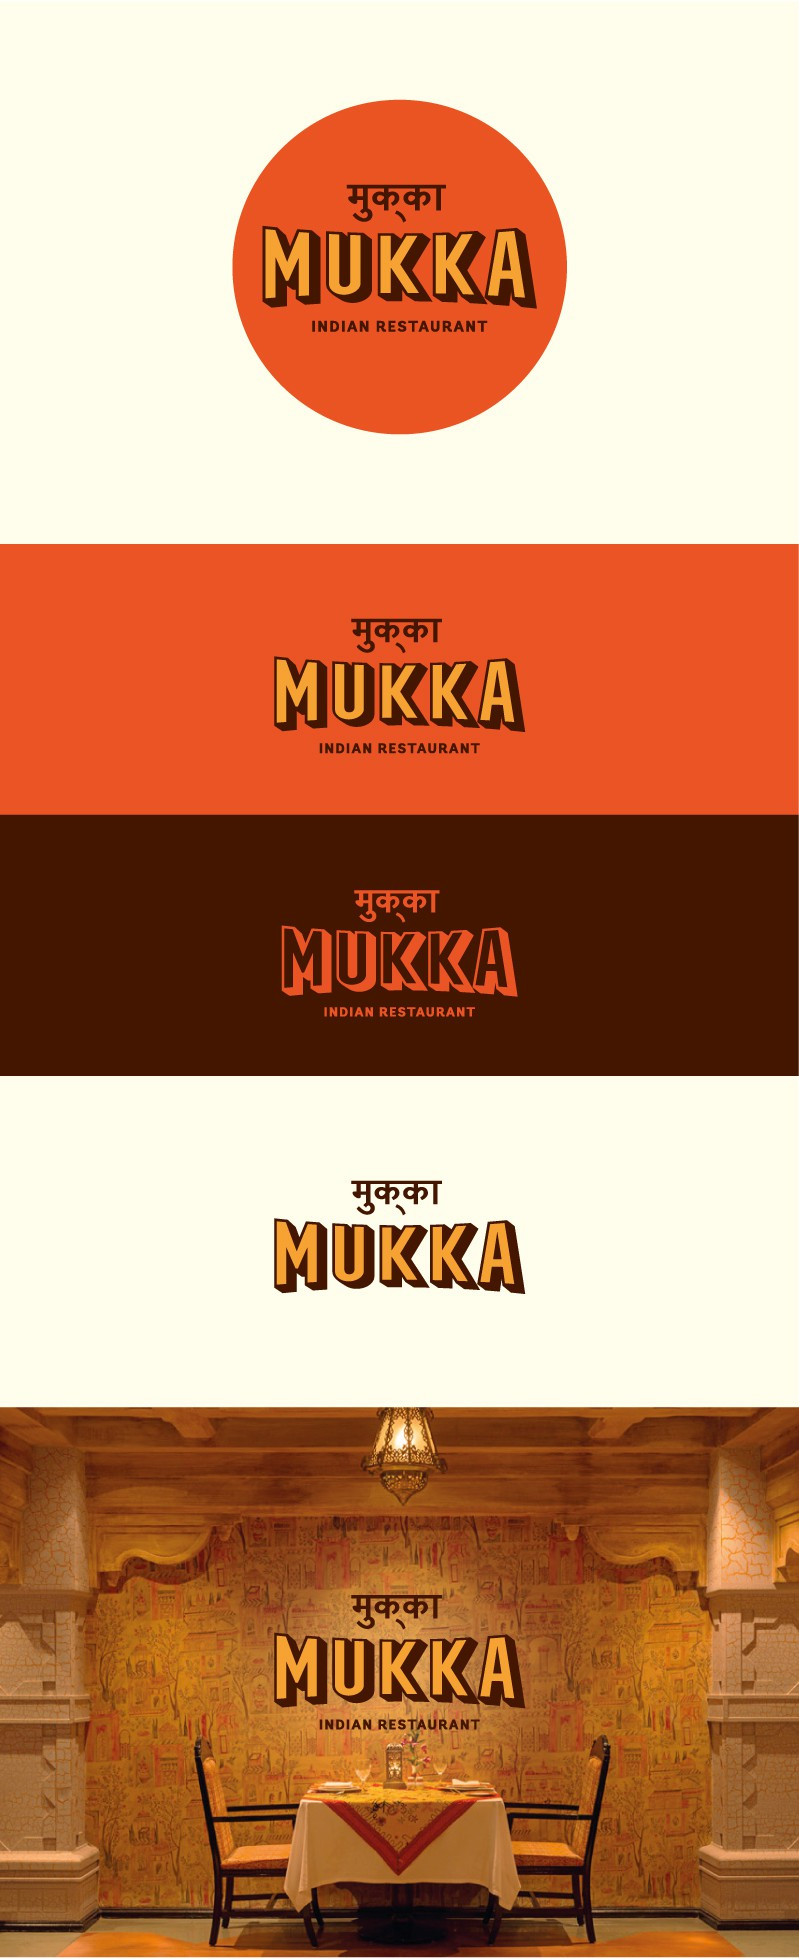 Create brand identity with logo and business card for a modern Indian restaurant